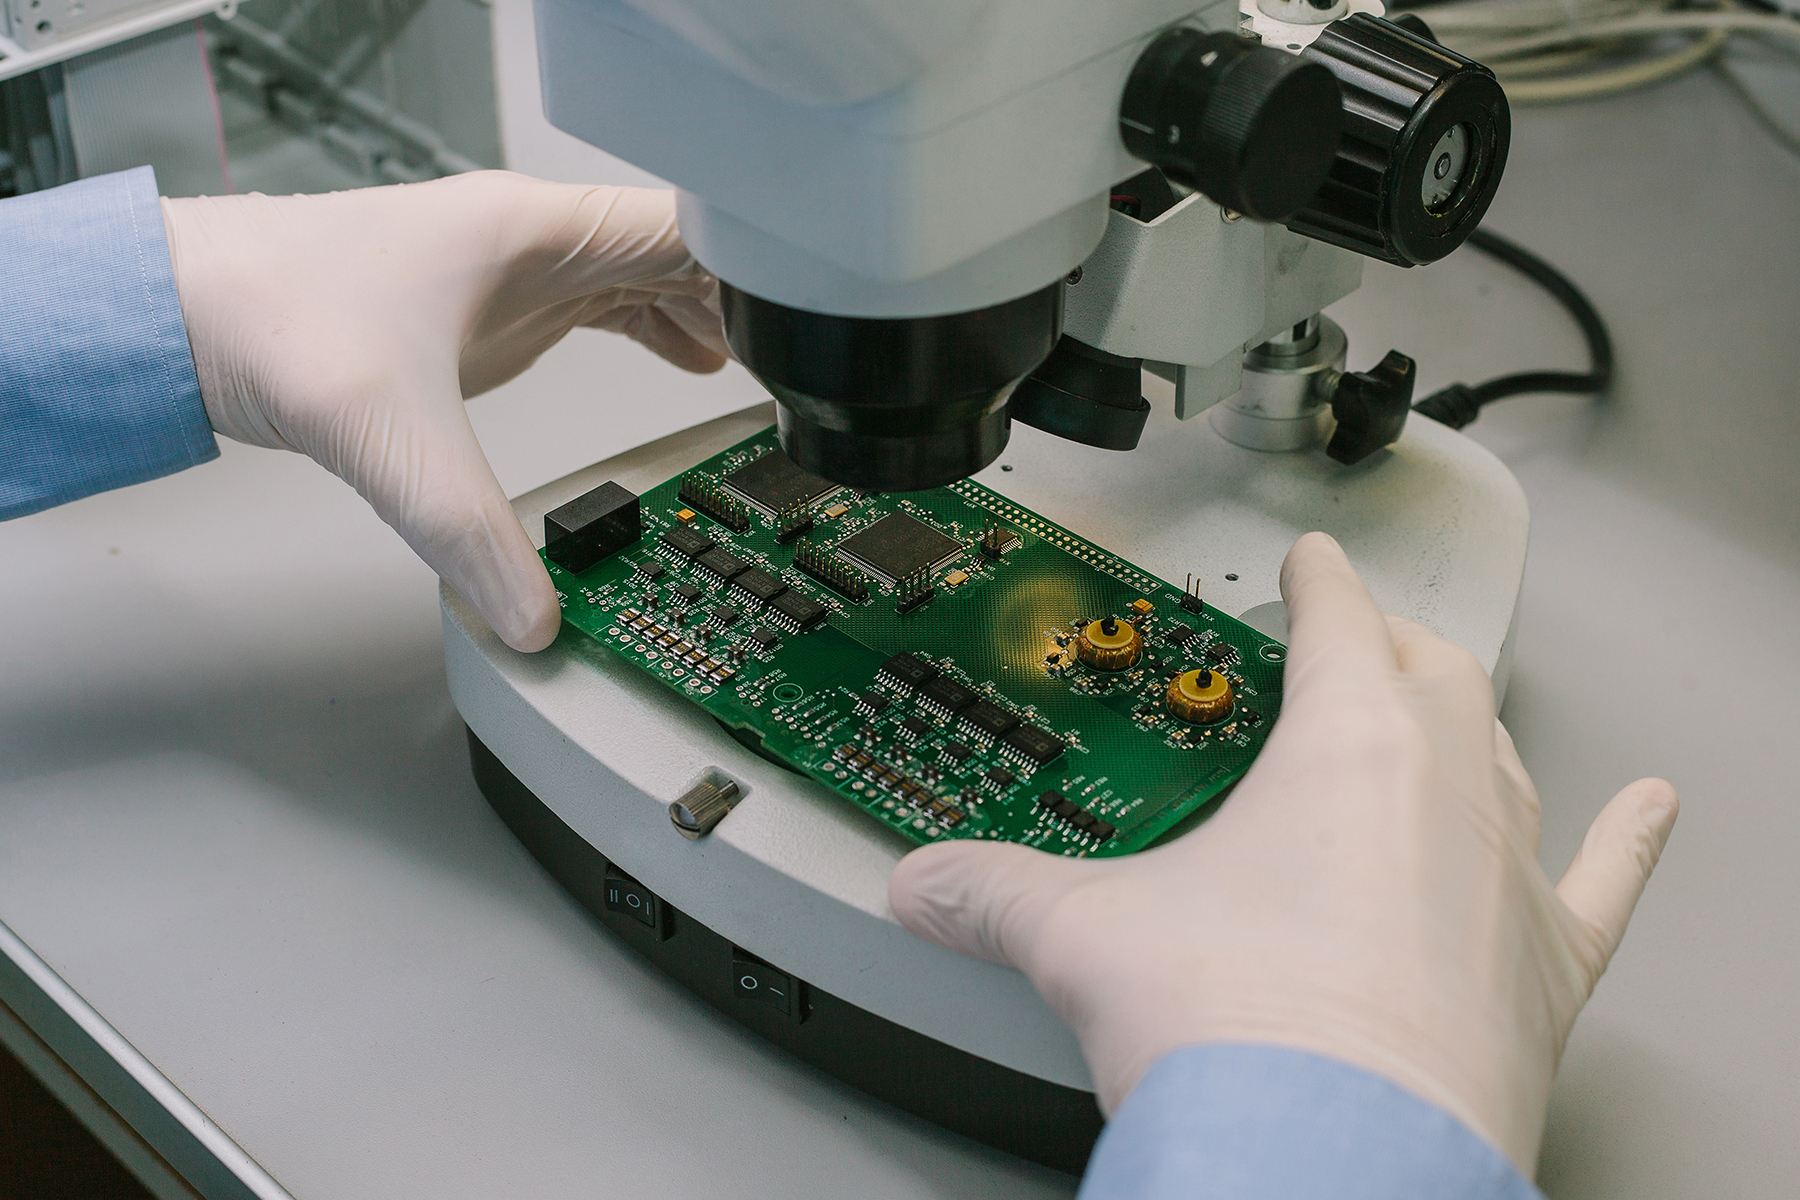 Prototype PCB Assembly - microchip viewing-PCB